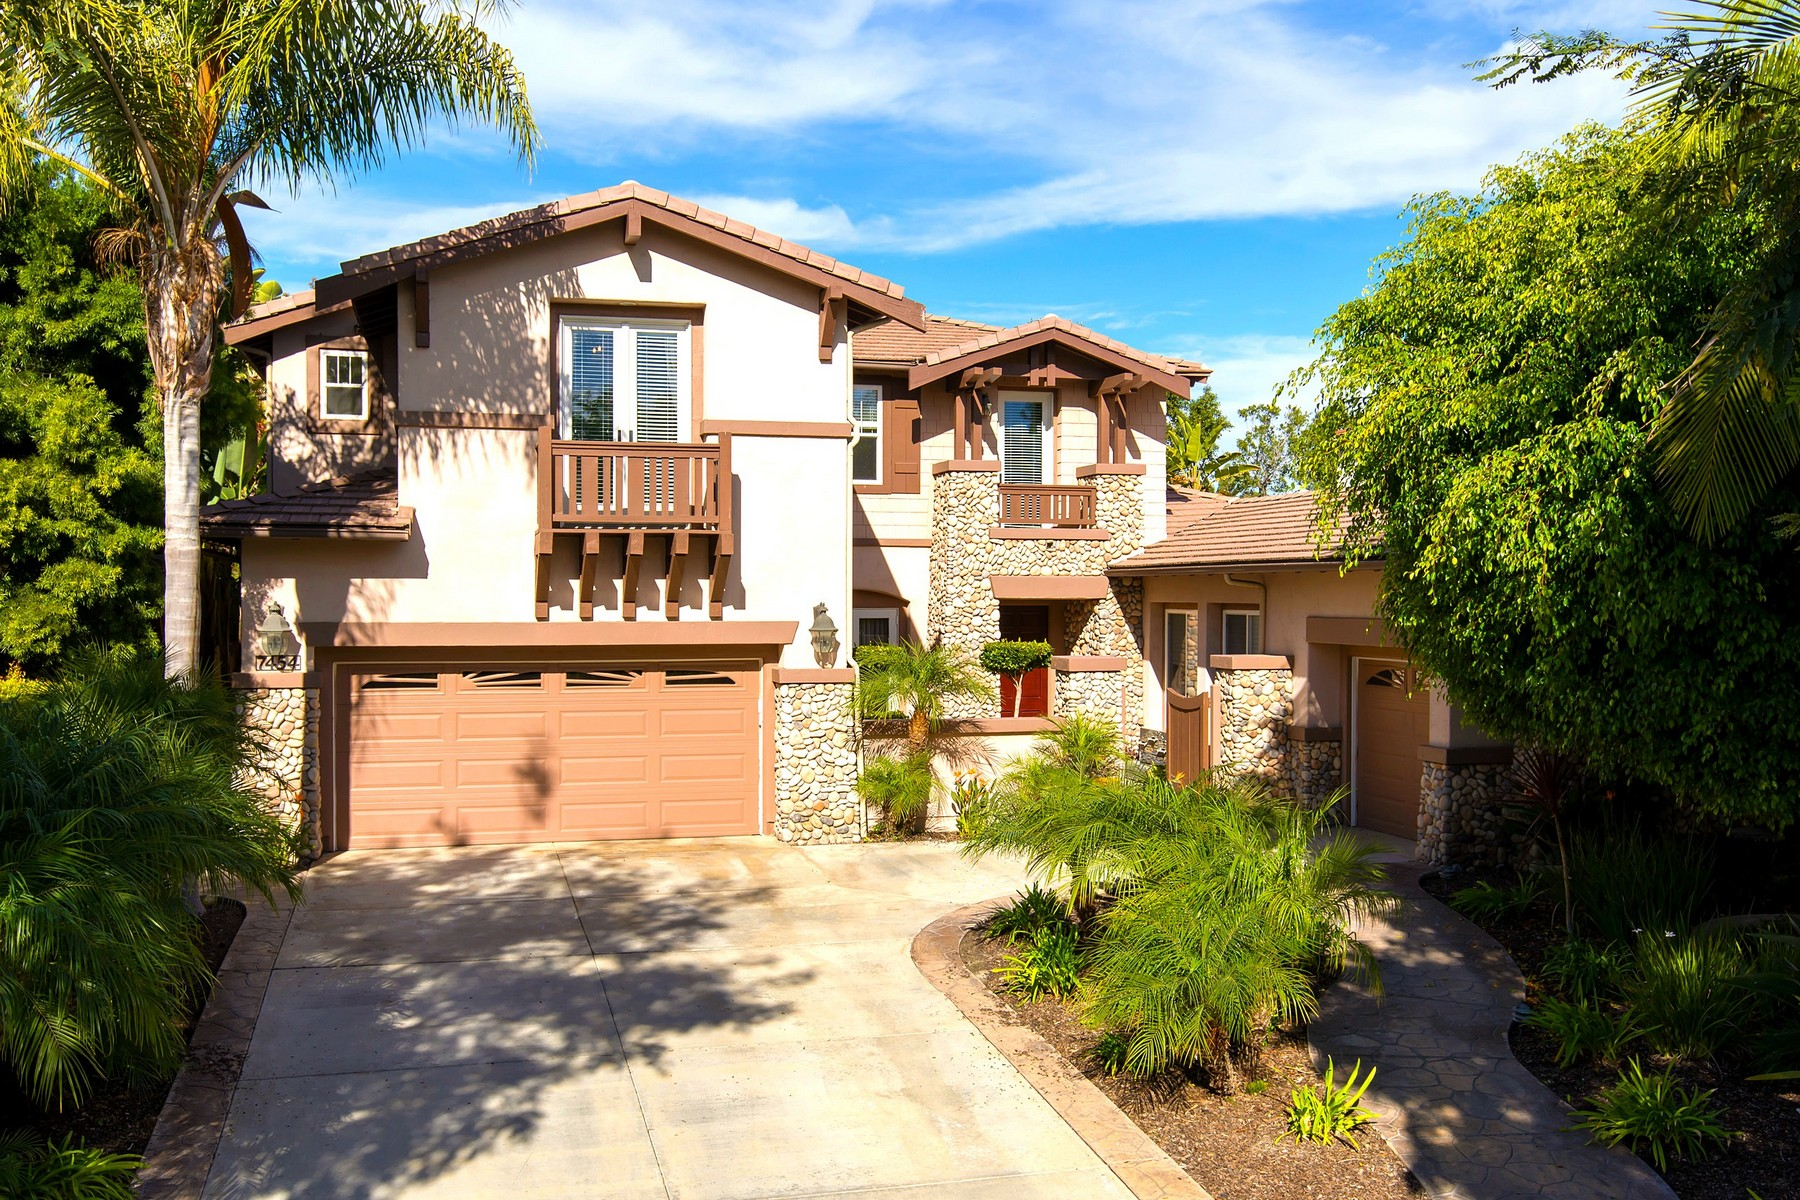 Single Family Home for Sale at 7454 Collins Ranch Terrace San Diego, California 92130 United States